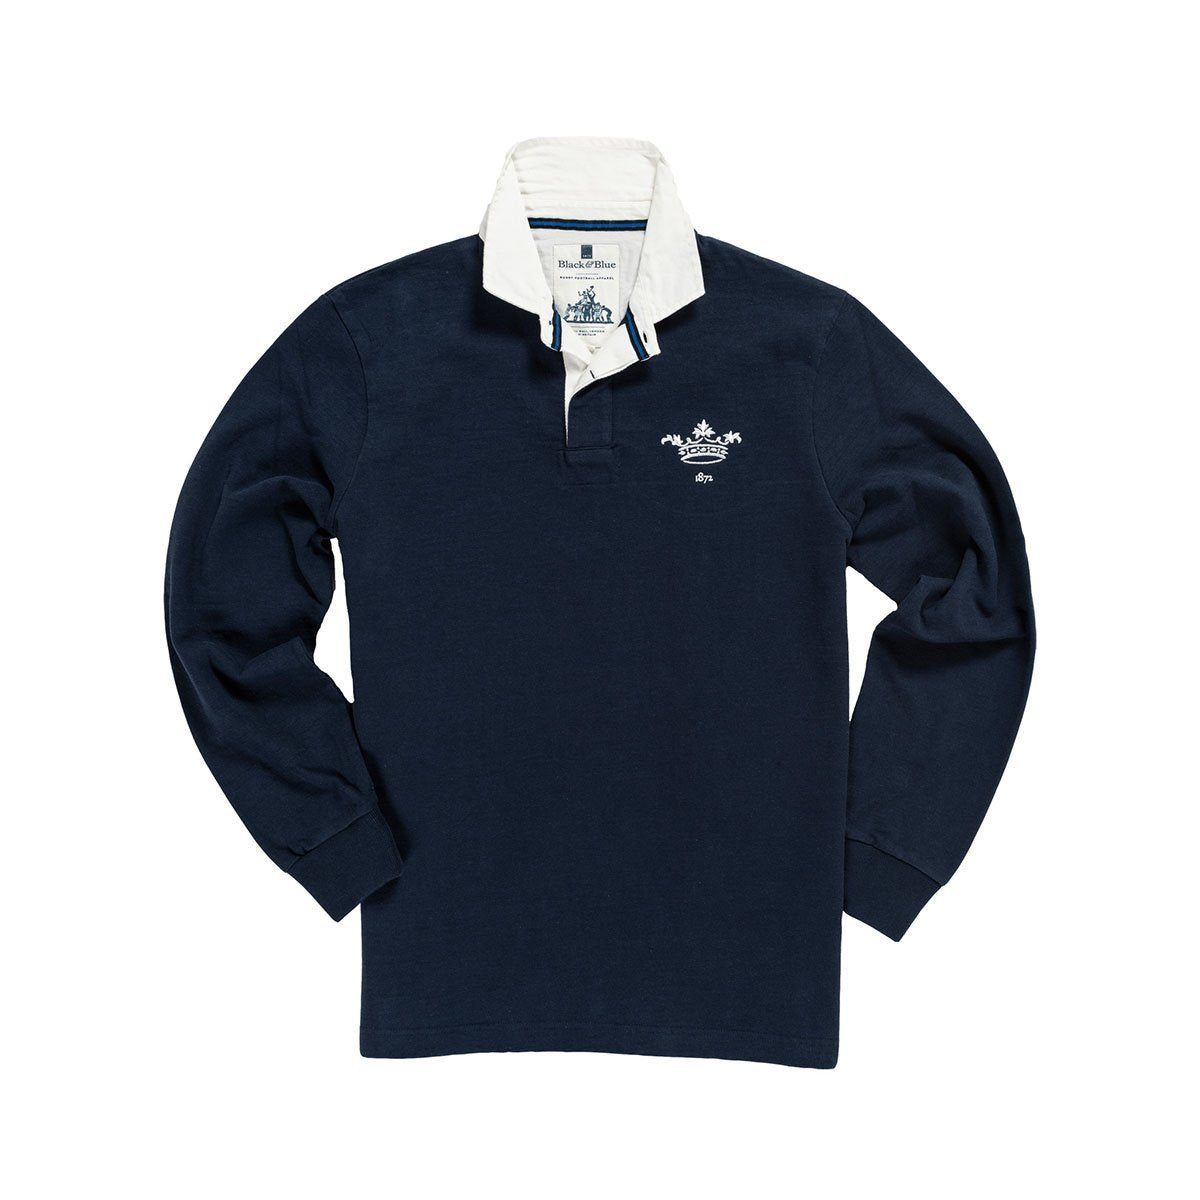 1V/OXS, Black & Blue 1871, Oxford 1872 Rugby Shirt, Navy, Vintage, Classic Rugby Shirt